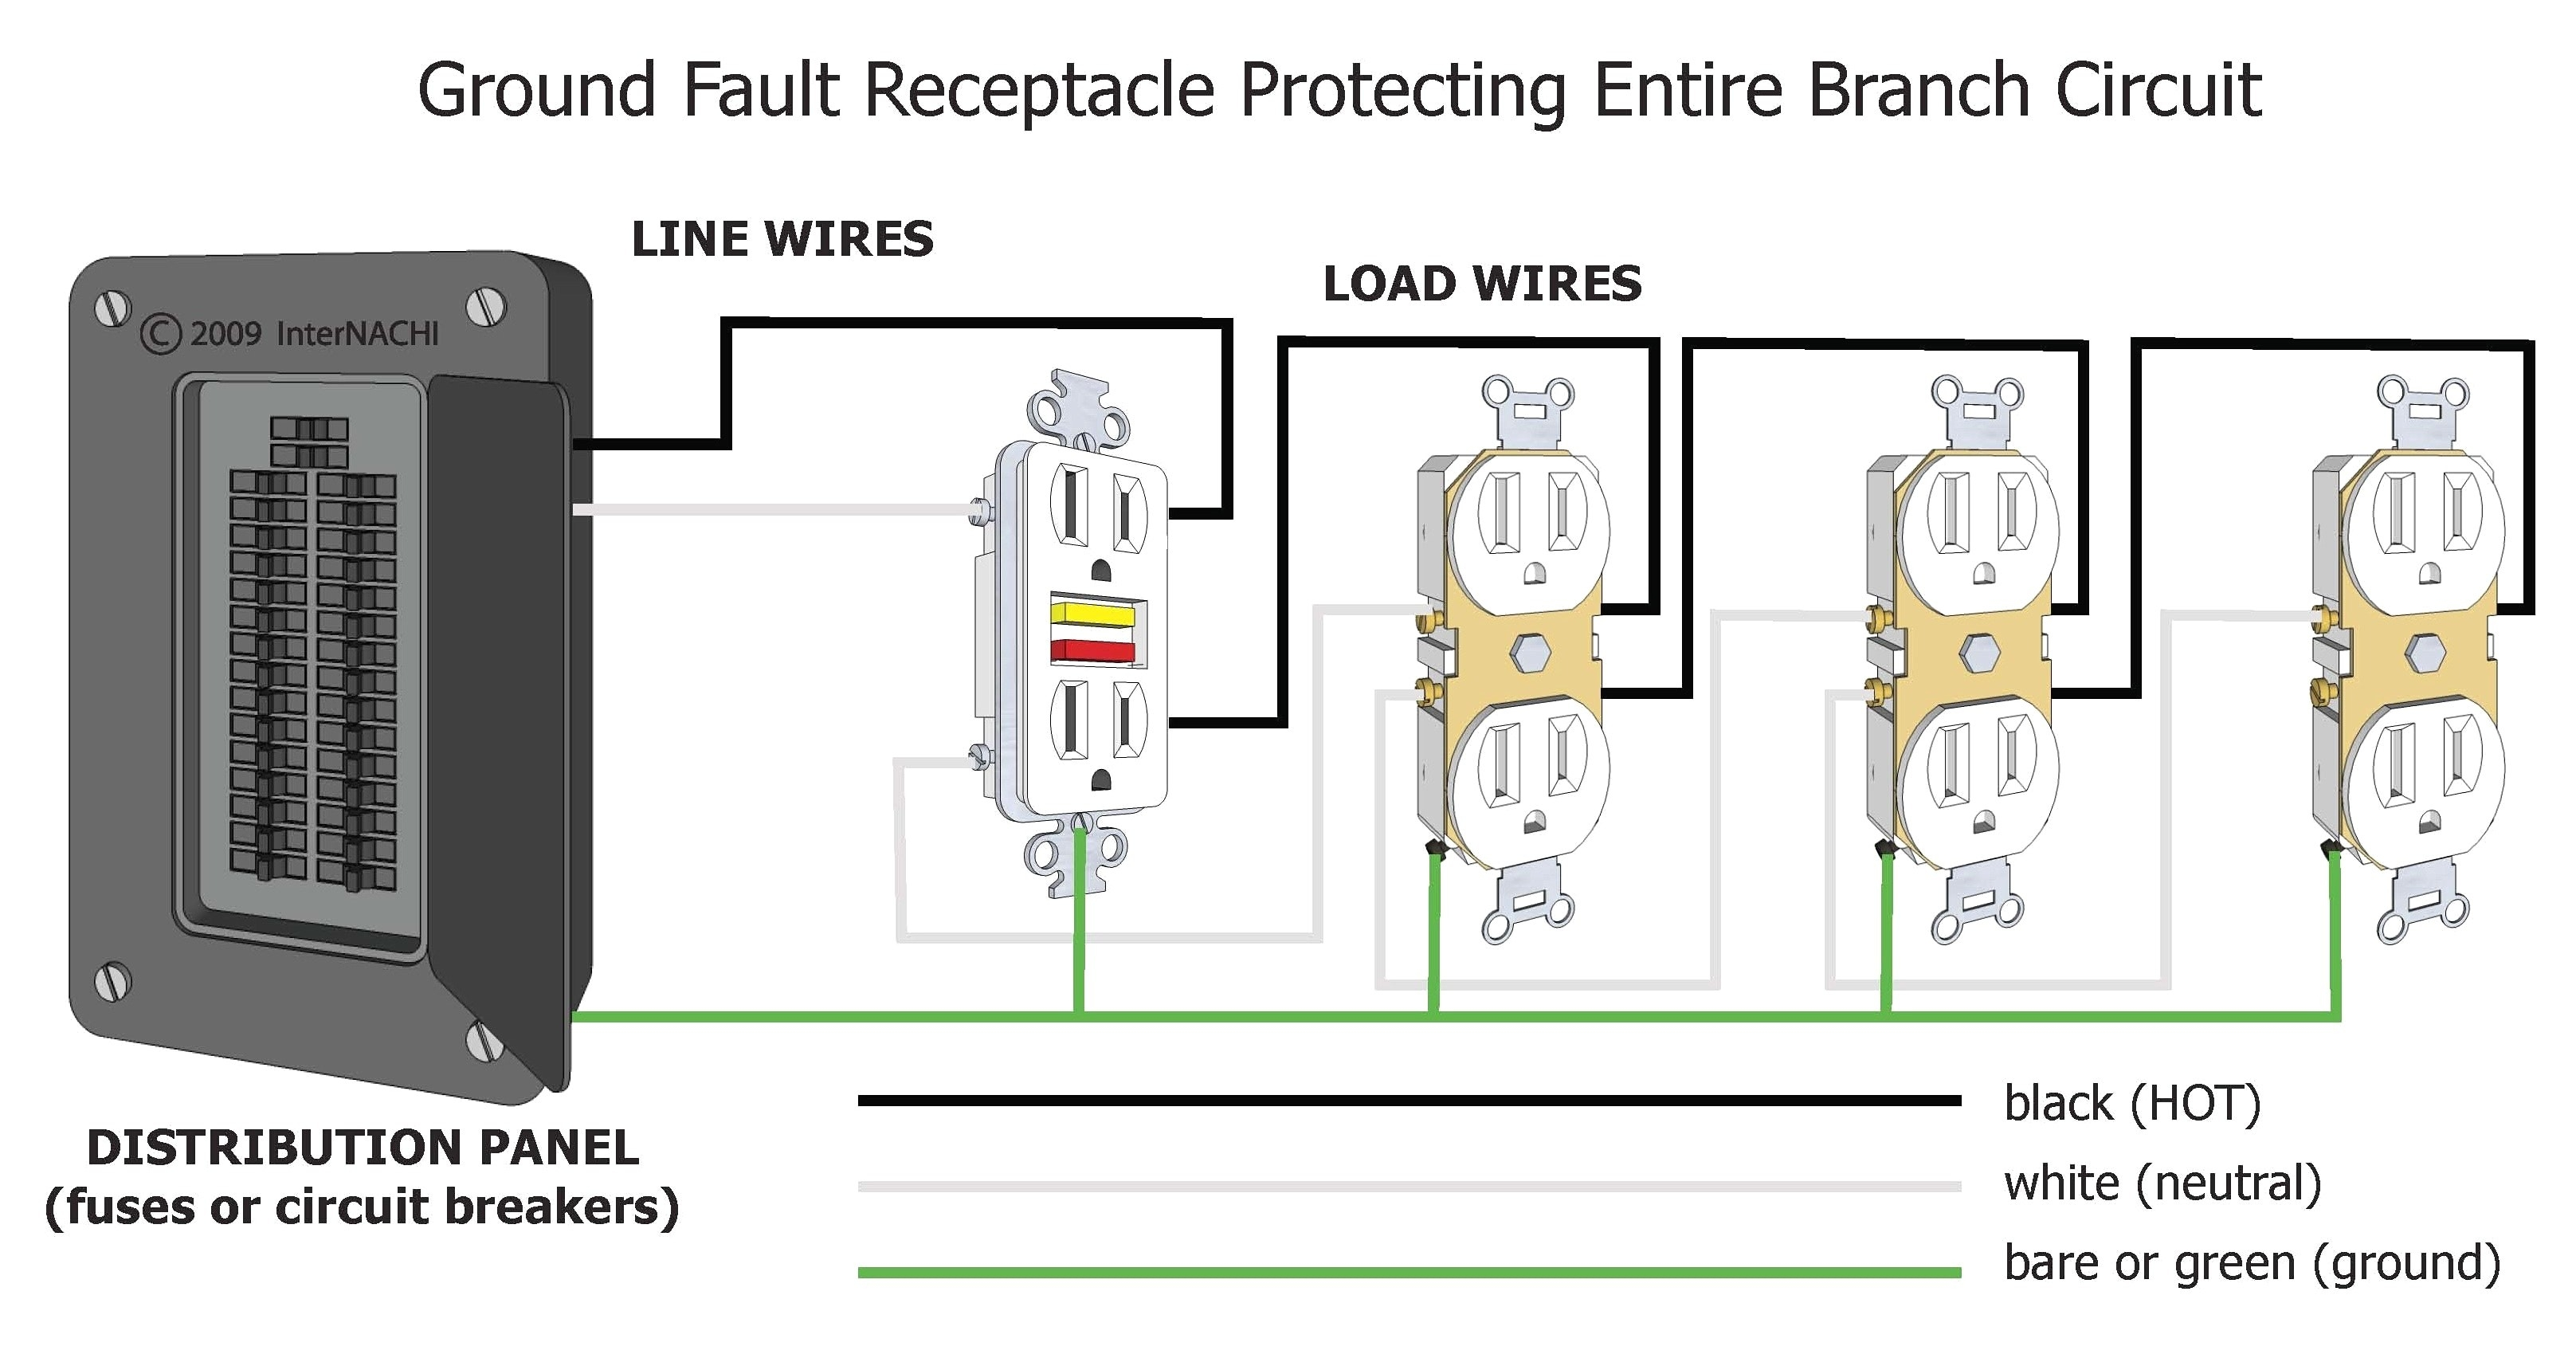 Ground Fault Receptacle Wiring Diagram - Ground Fault Receptacle Wiring Diagram Collection Multiple Electrical Outlet Wiring Diagram Best Ground Fault Circuit 13s